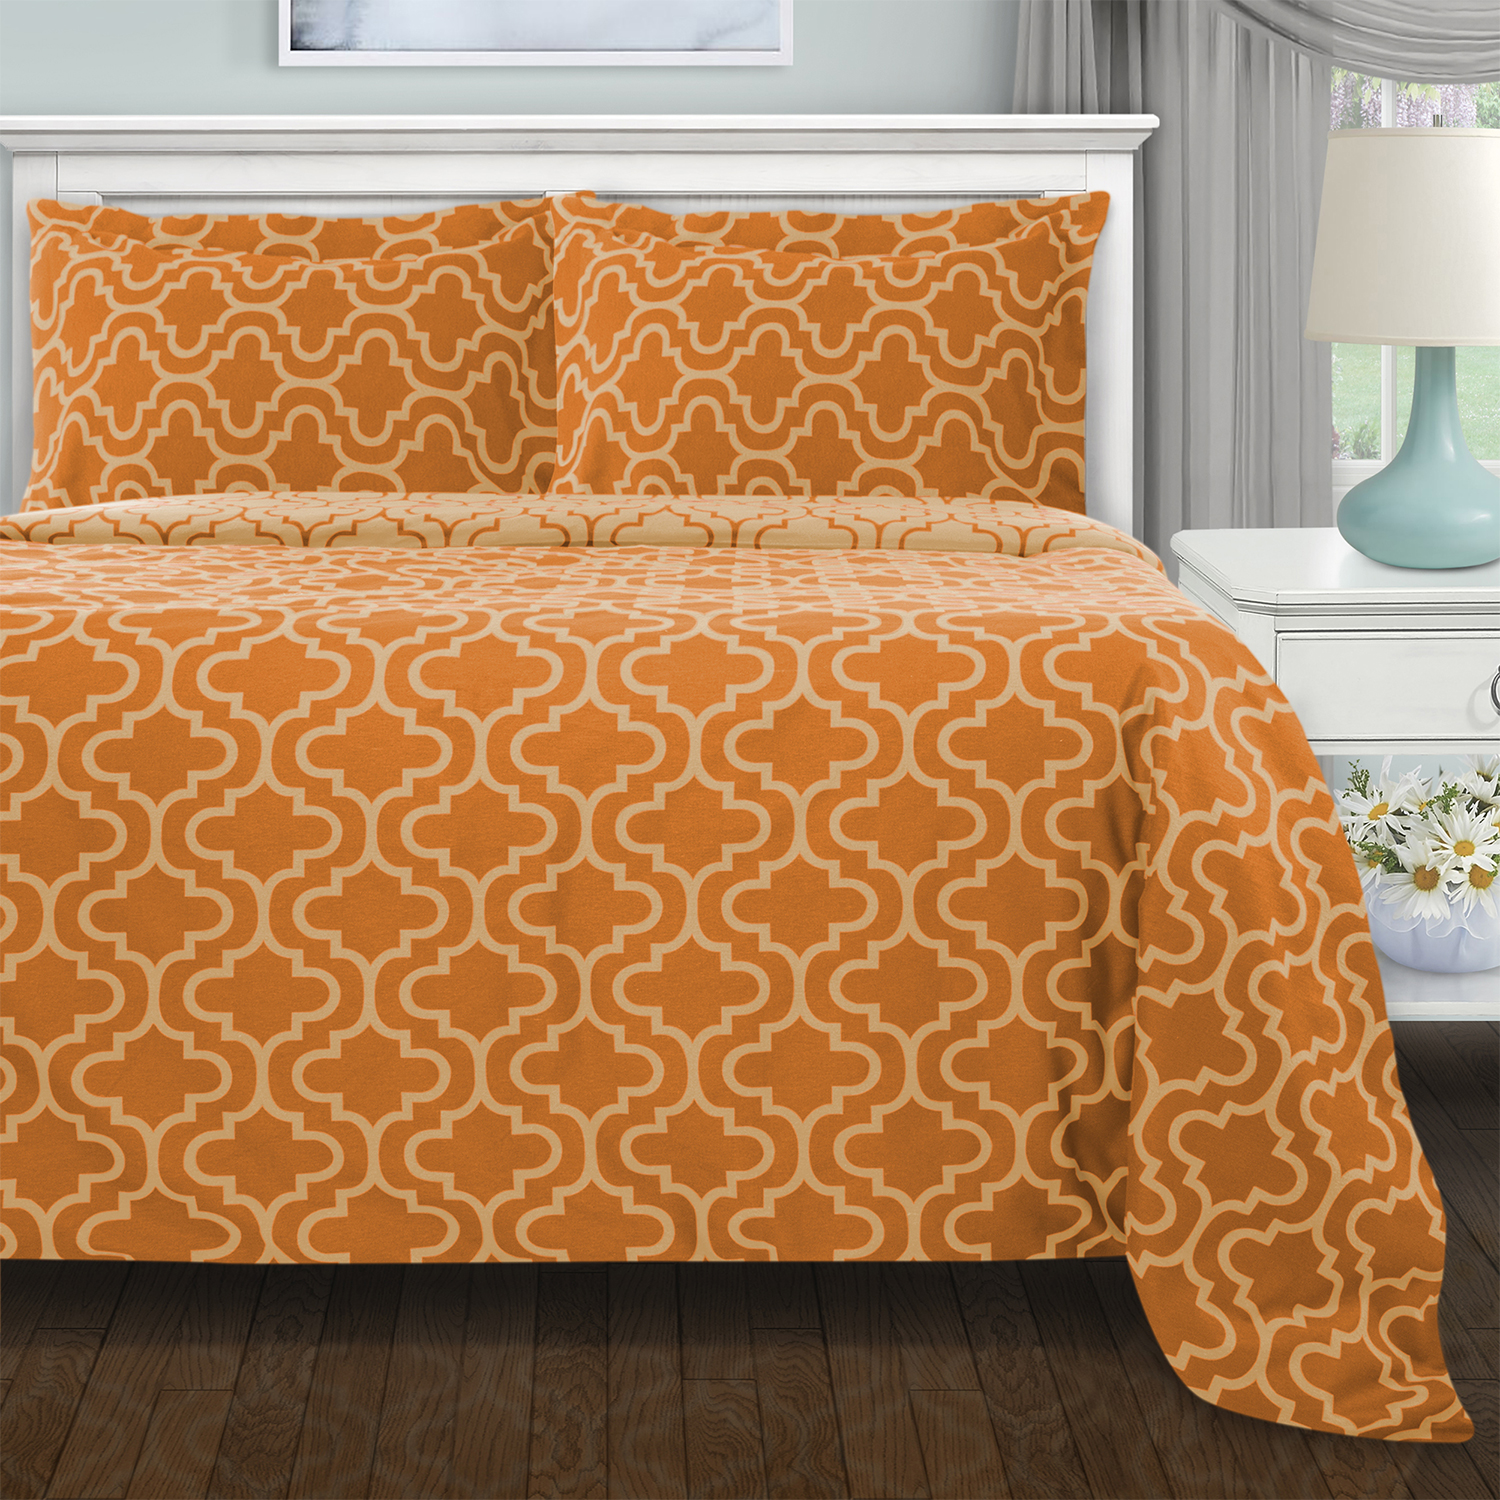 Extra Soft Reversible Duvet Cover Set Trellis